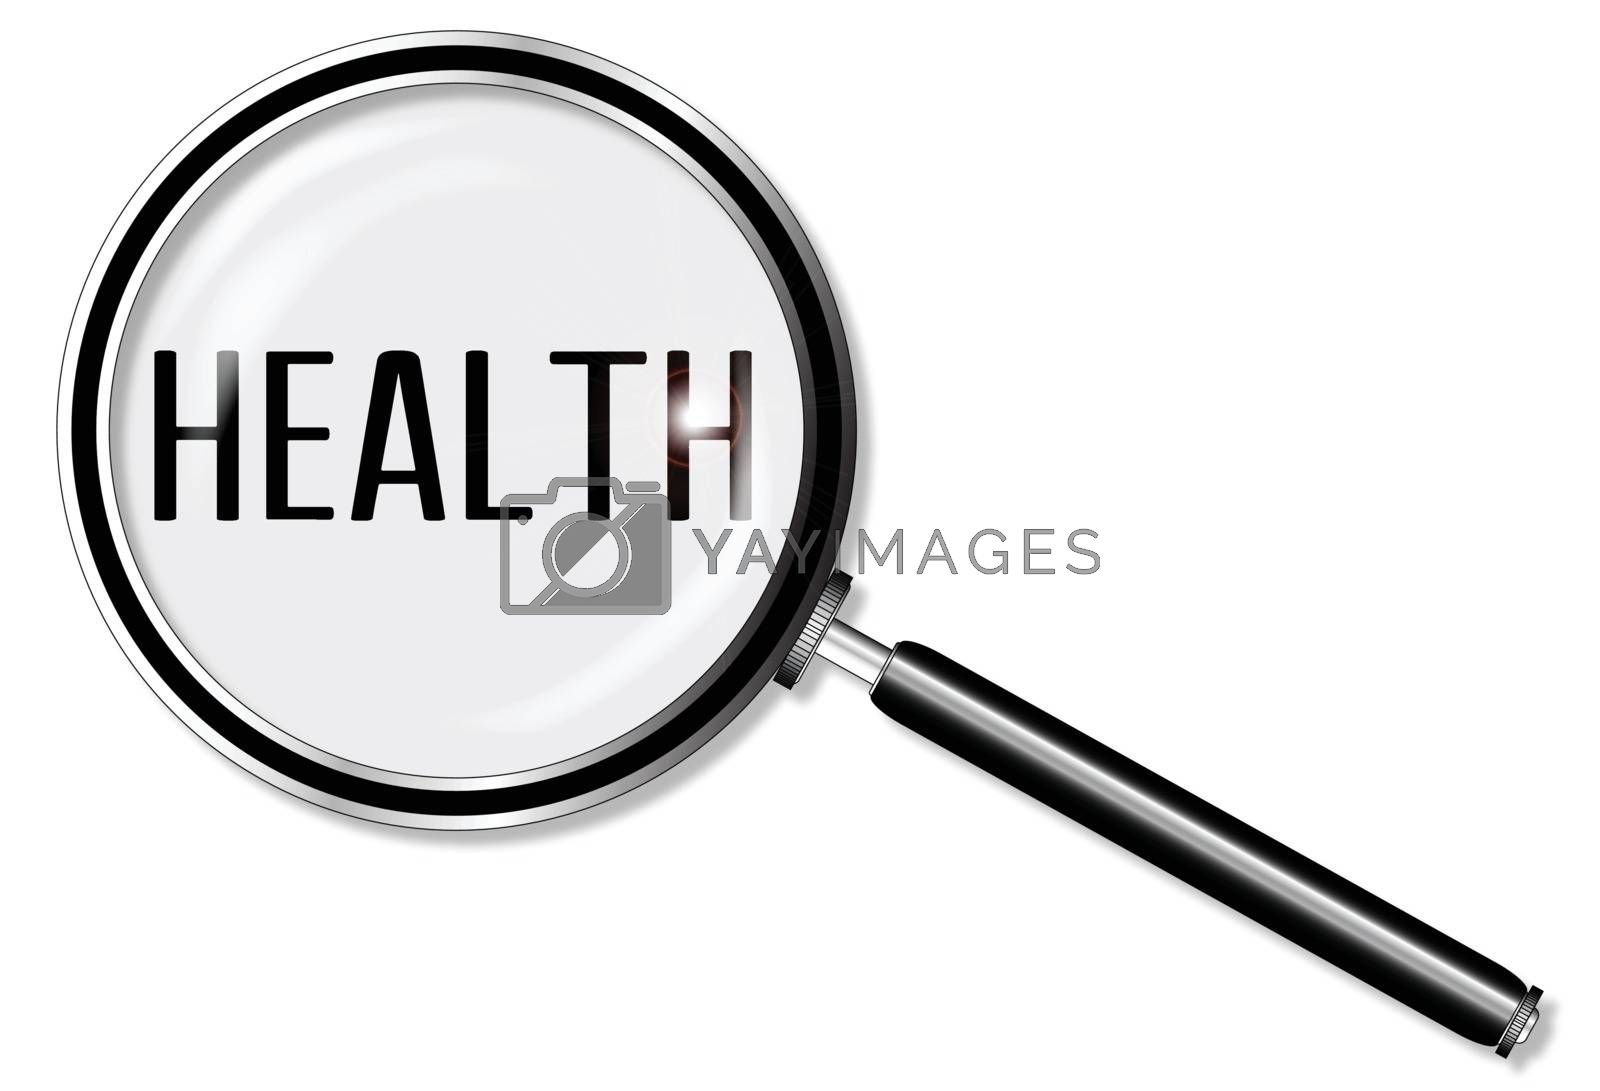 A magniying glass exanining health over a white background